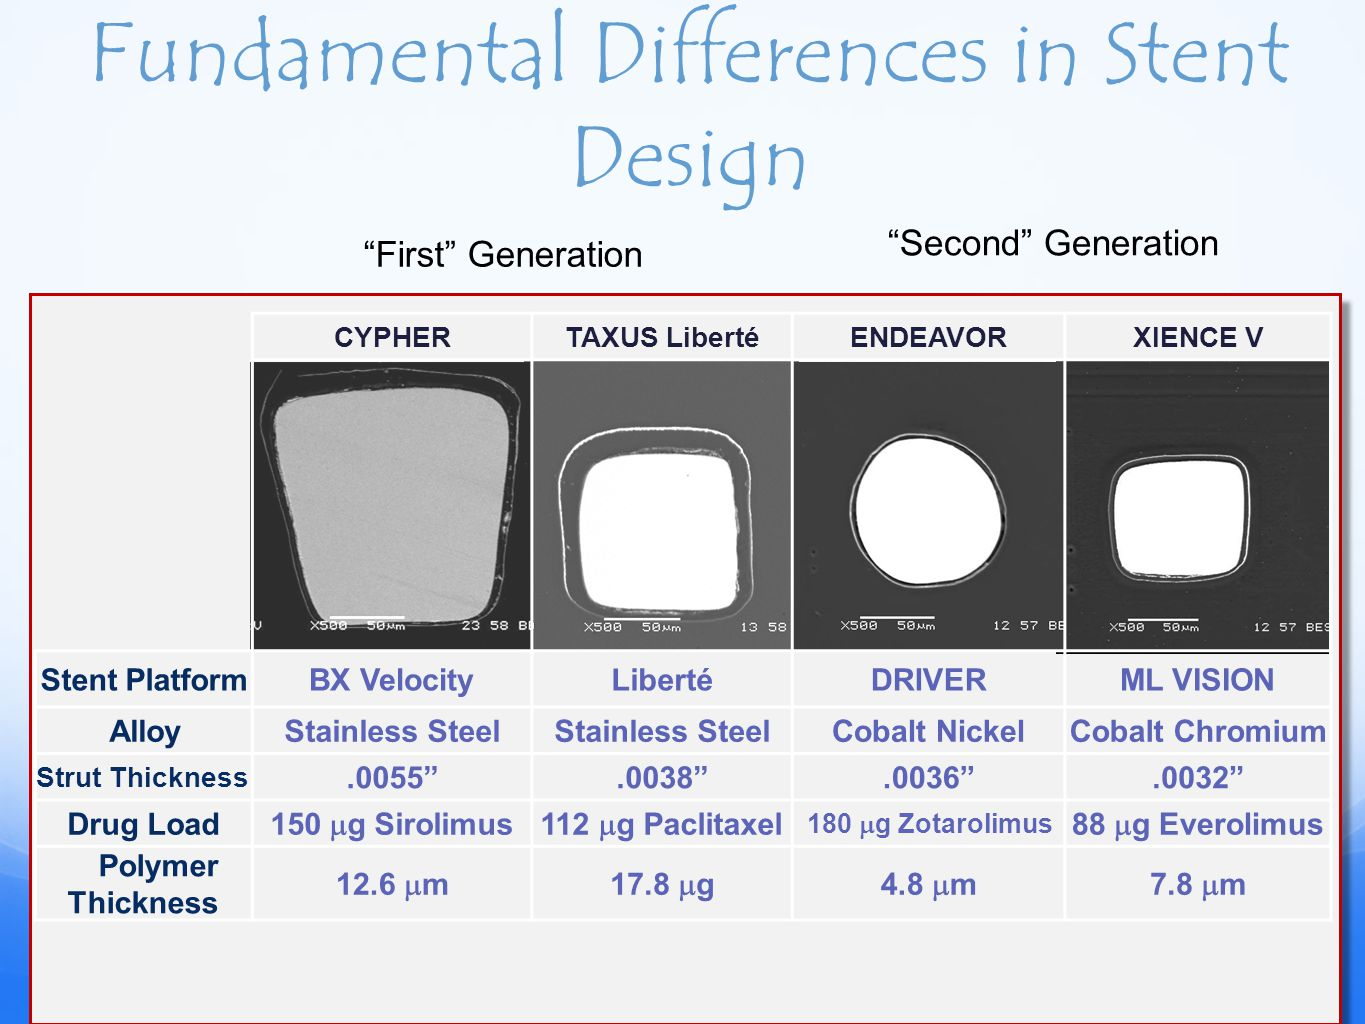 Fundamental Differences in Stent Design